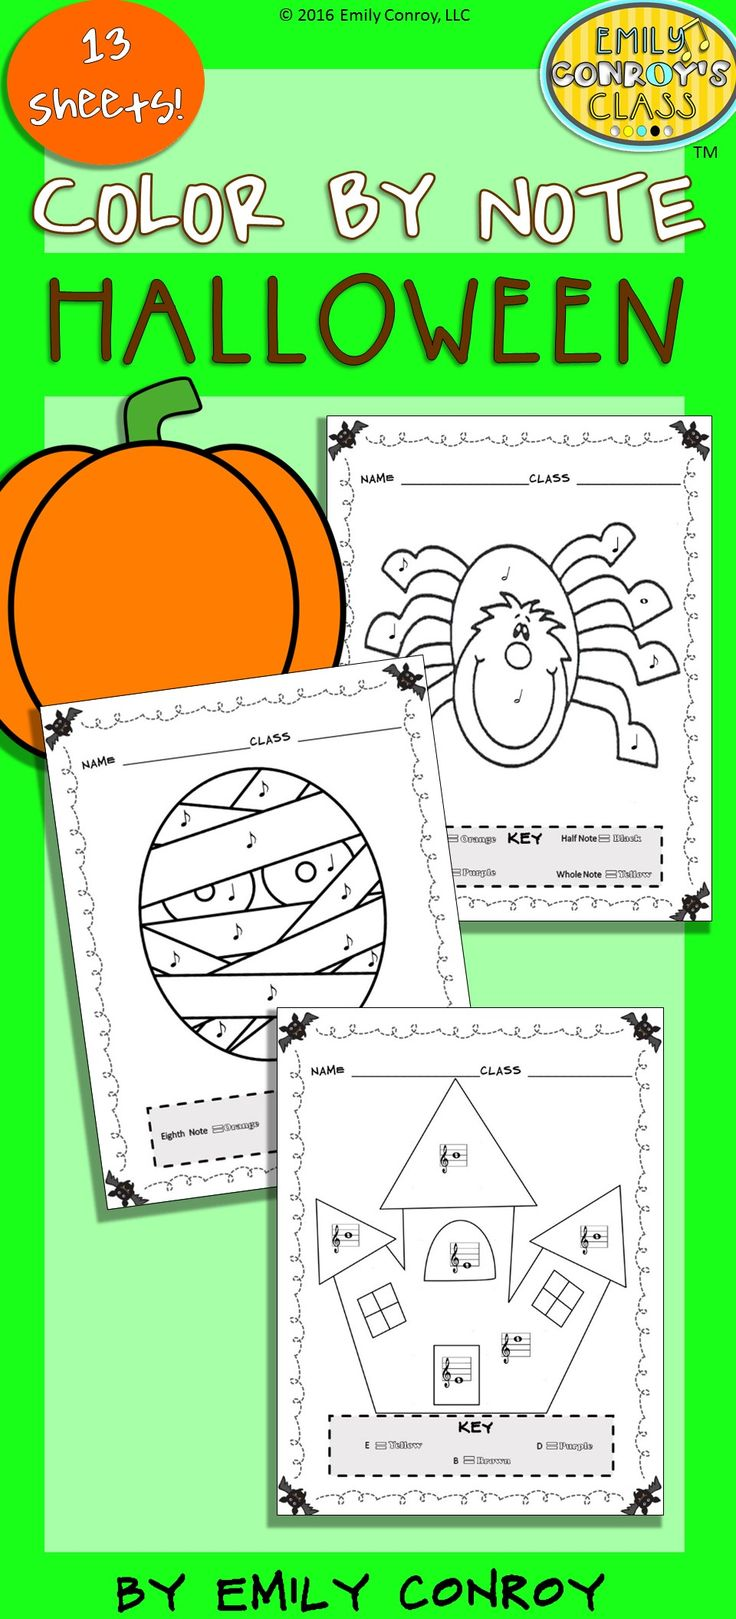 Coloring pages music